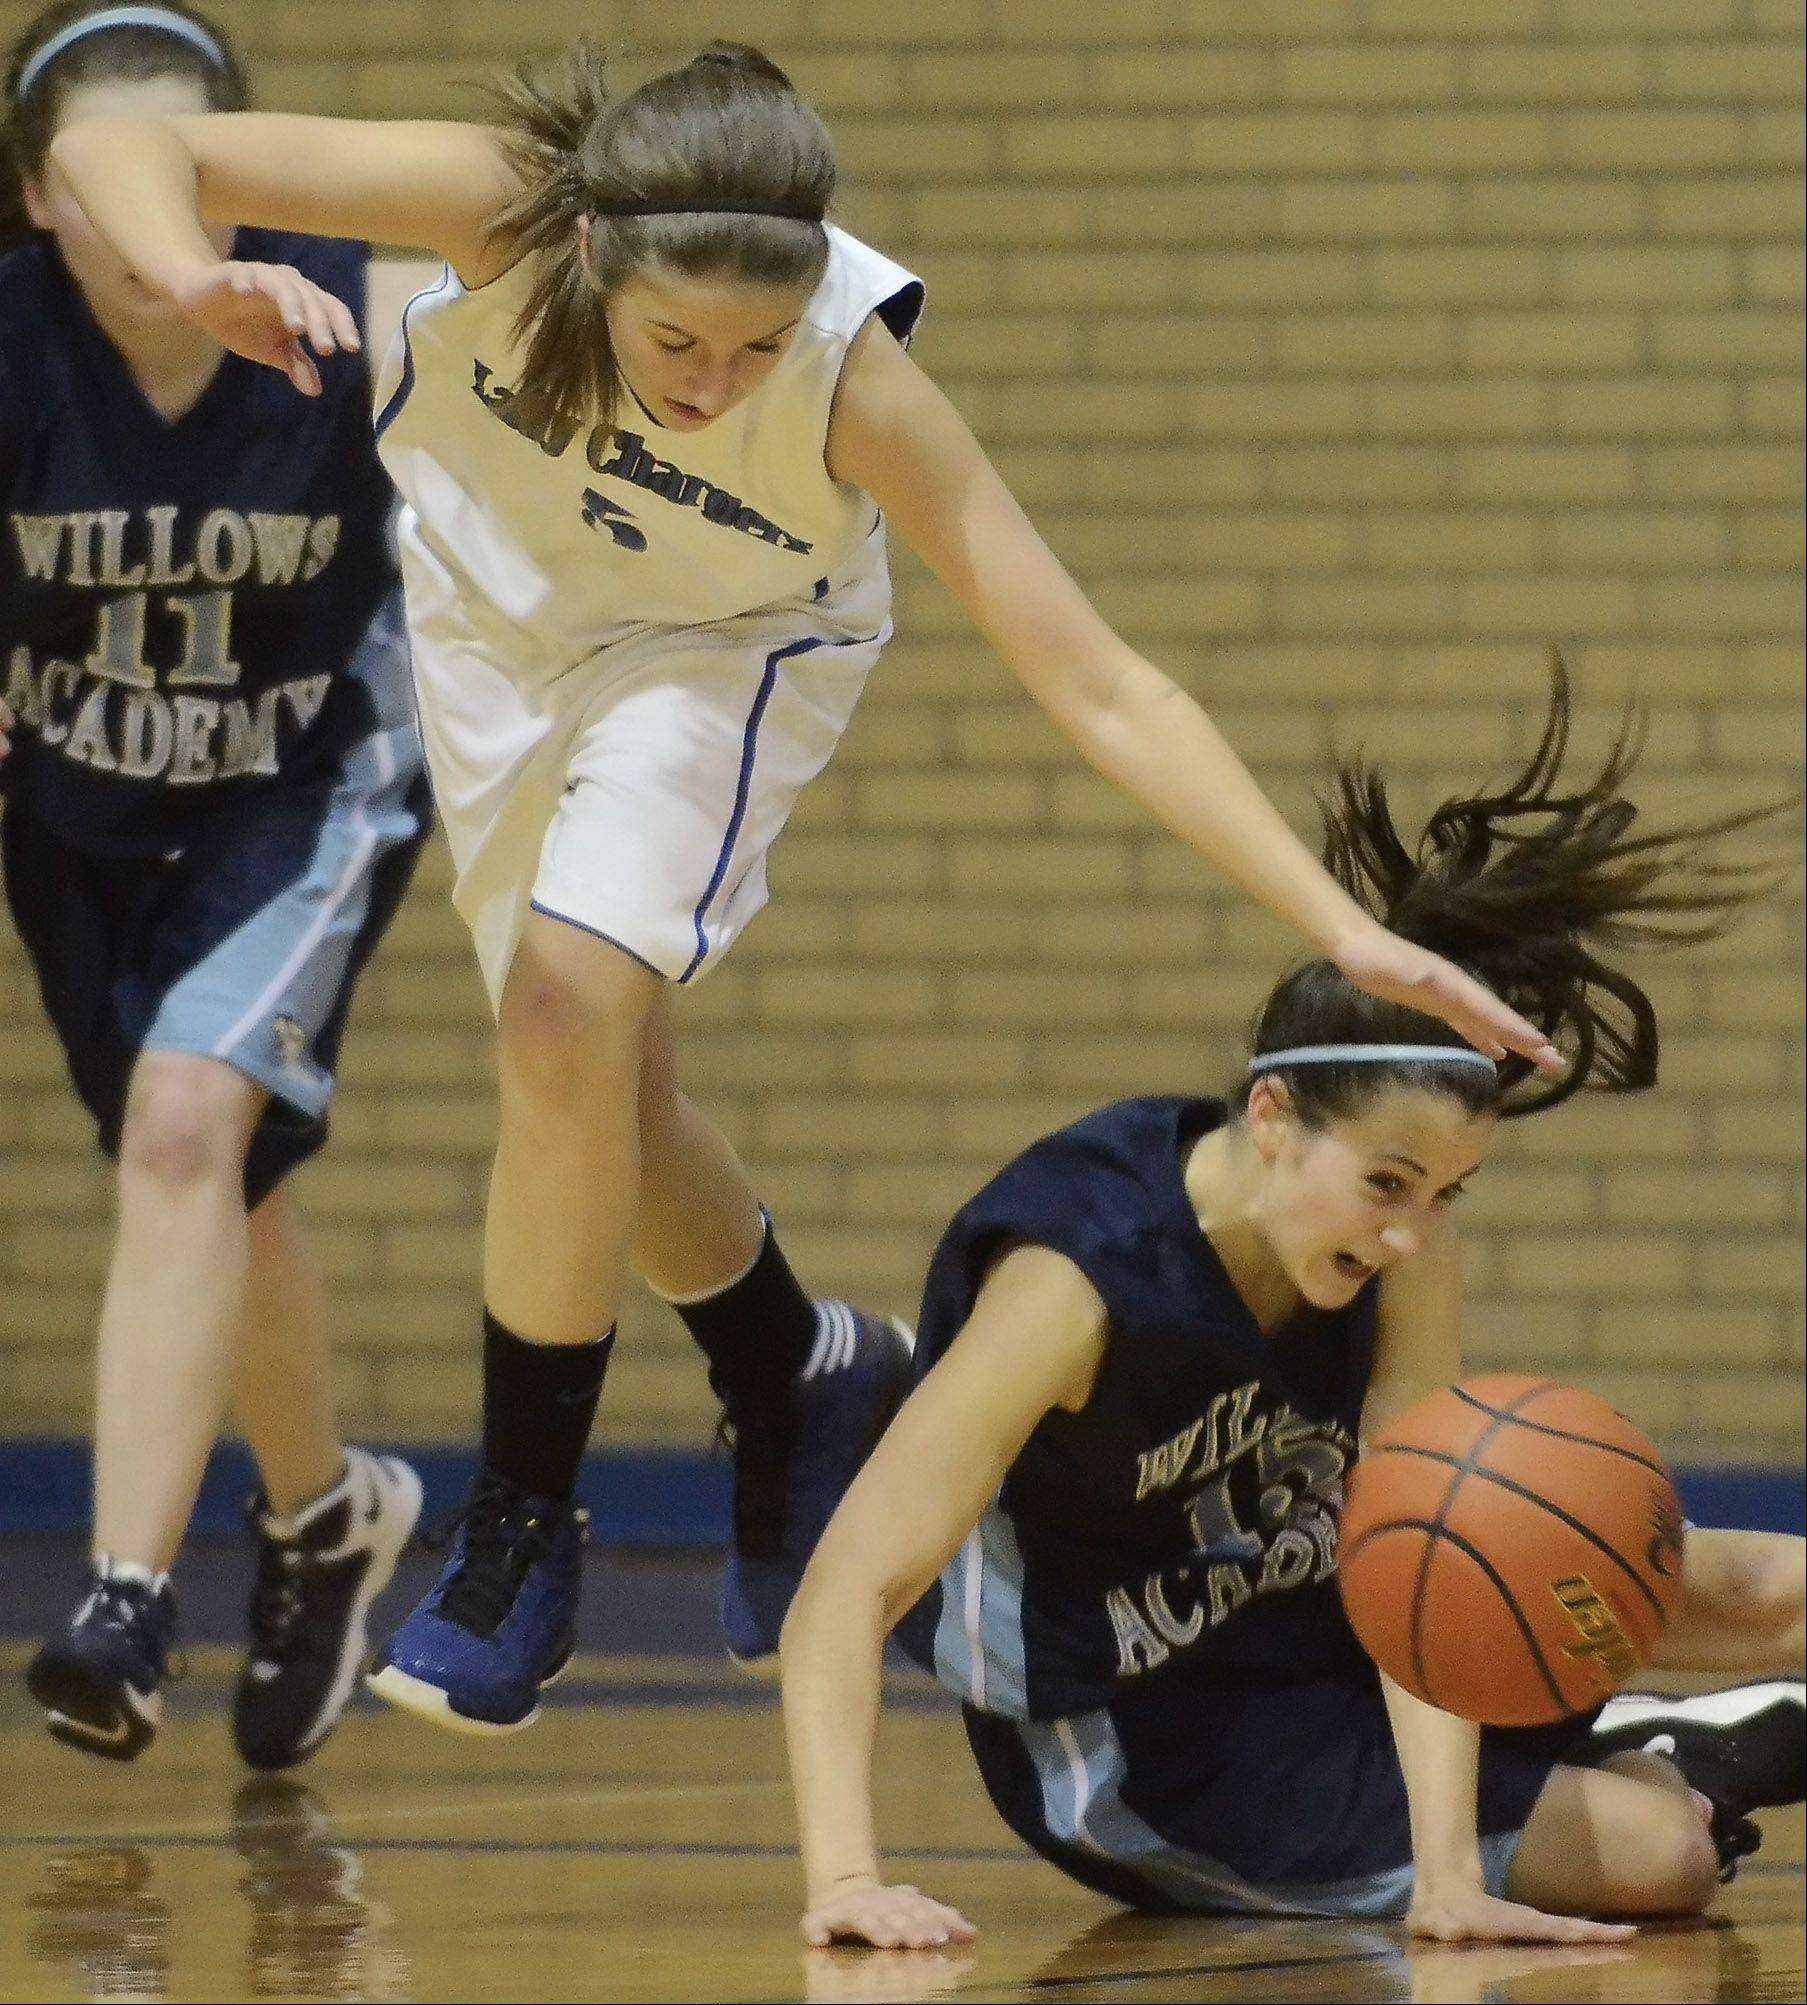 Willows weathers third straight game at Christian Liberty